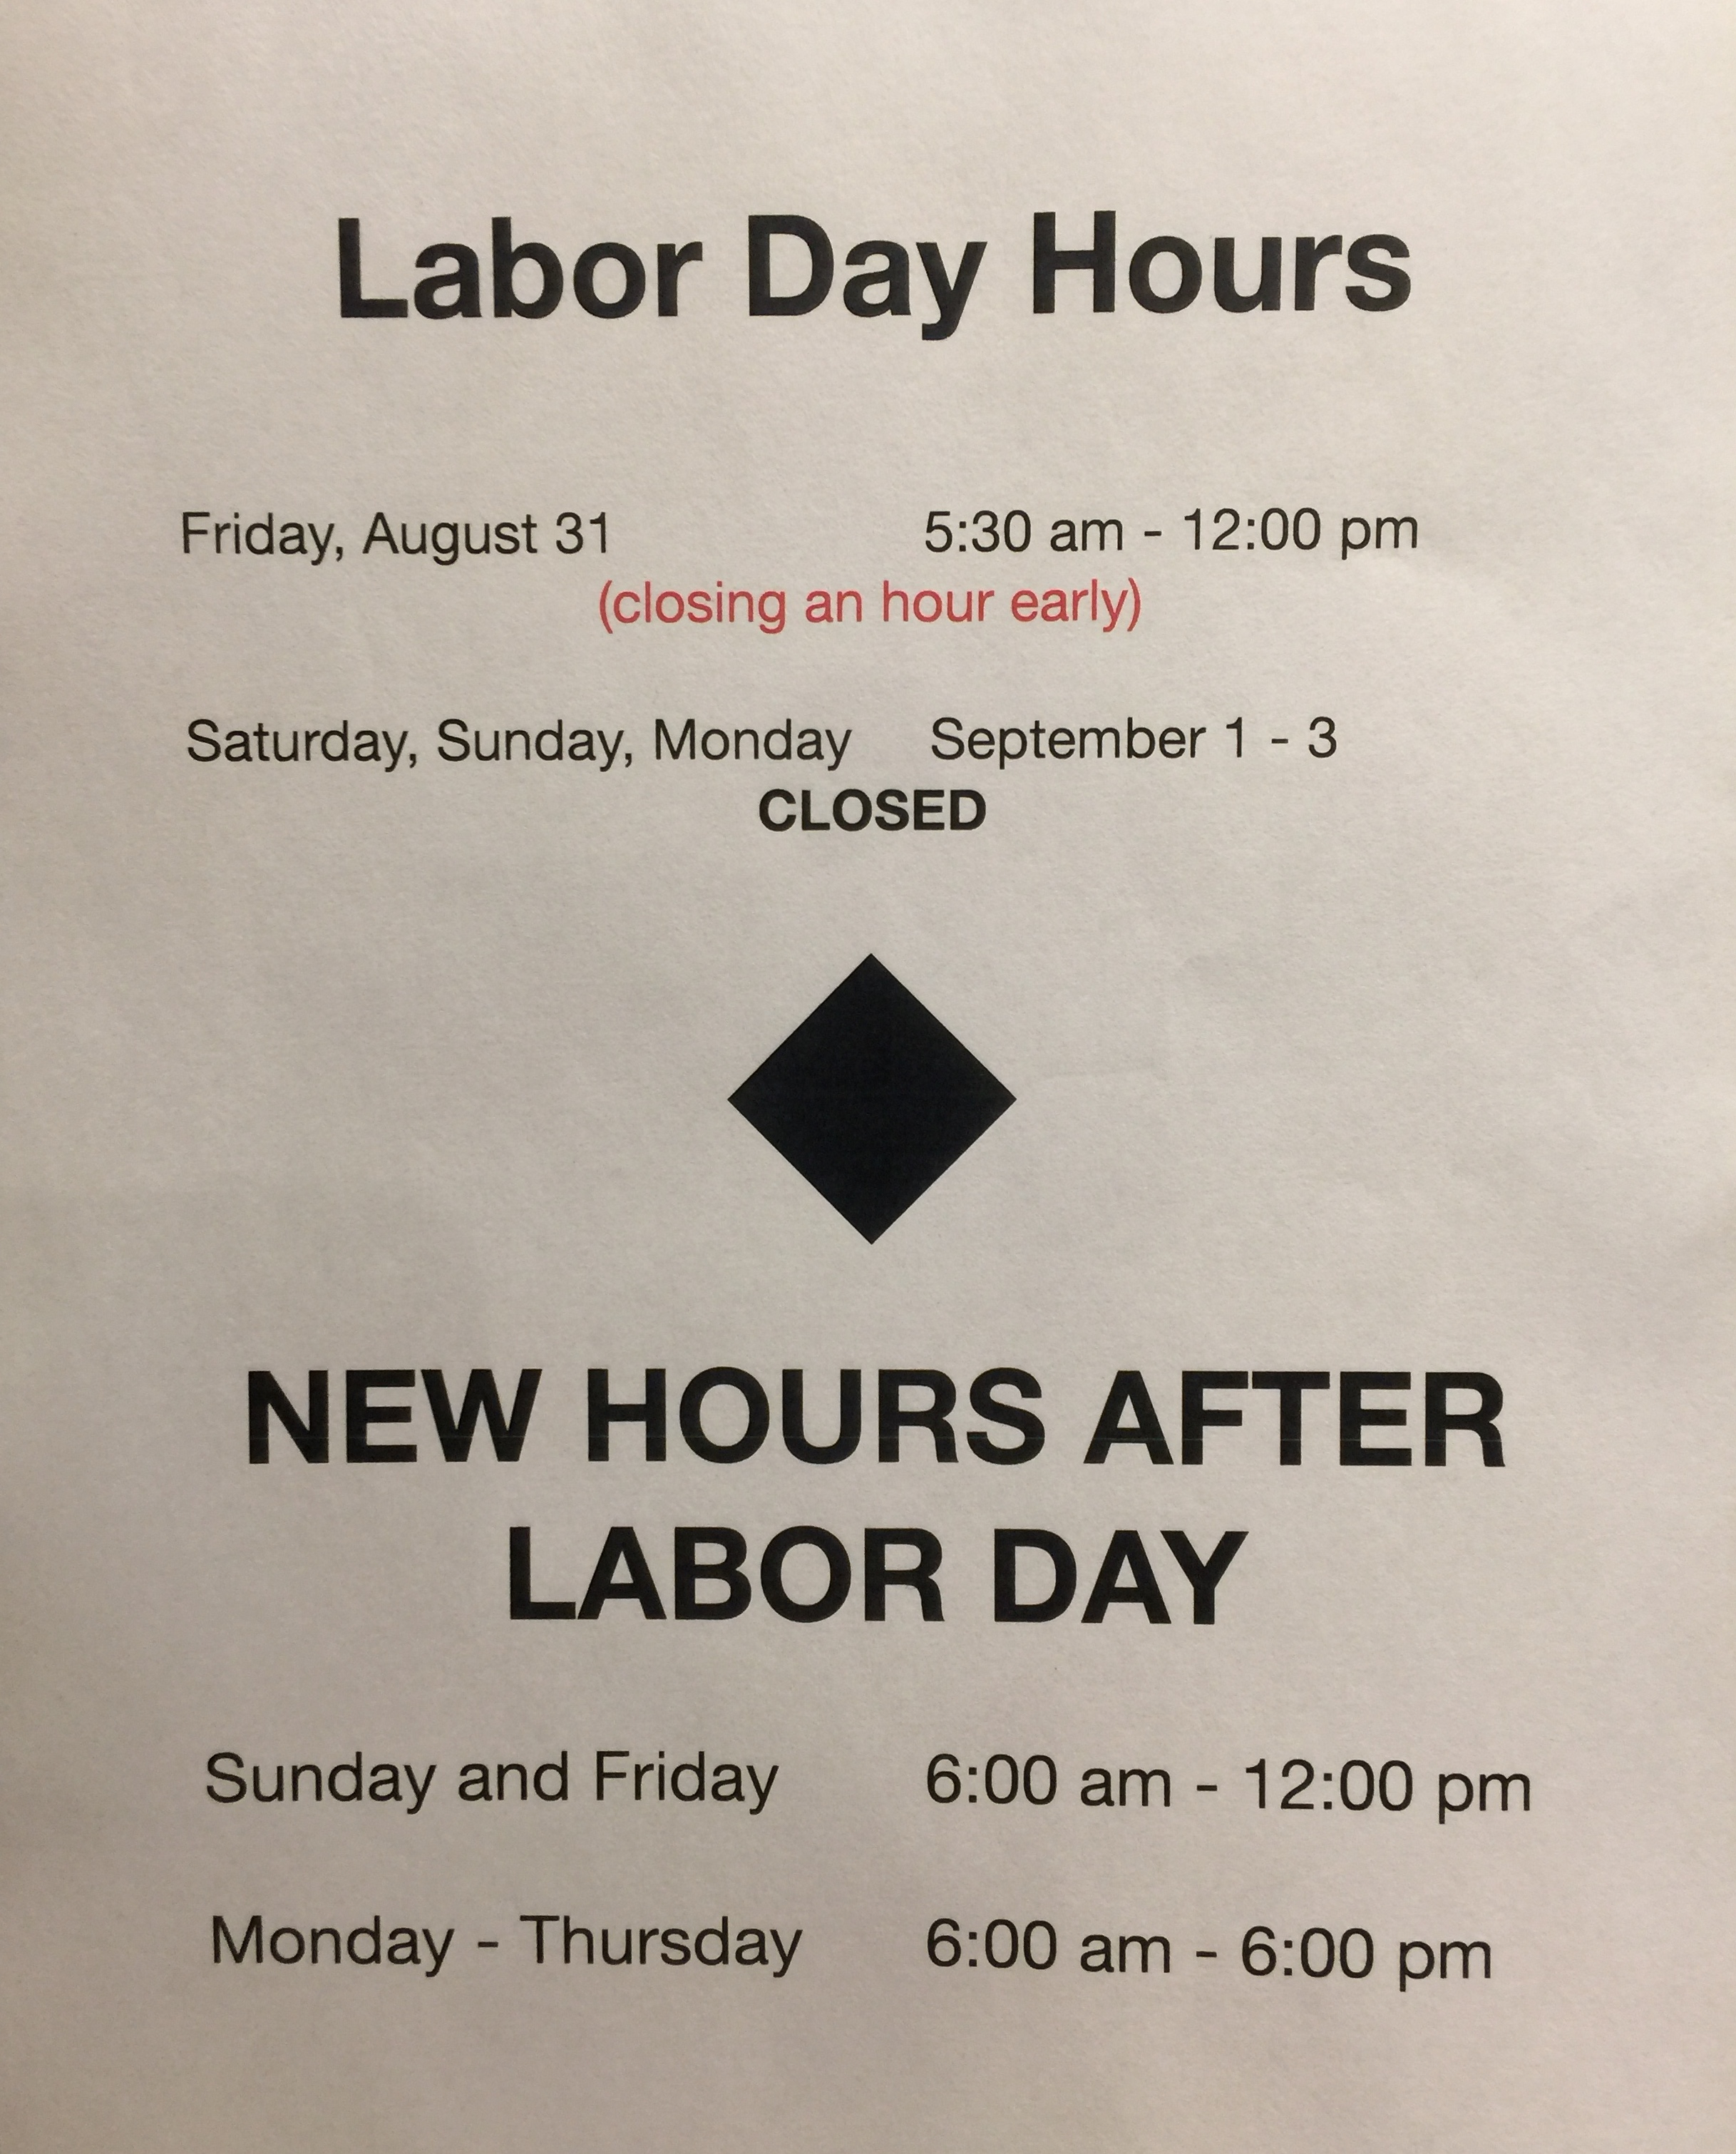 Labour Day Hours.JPG